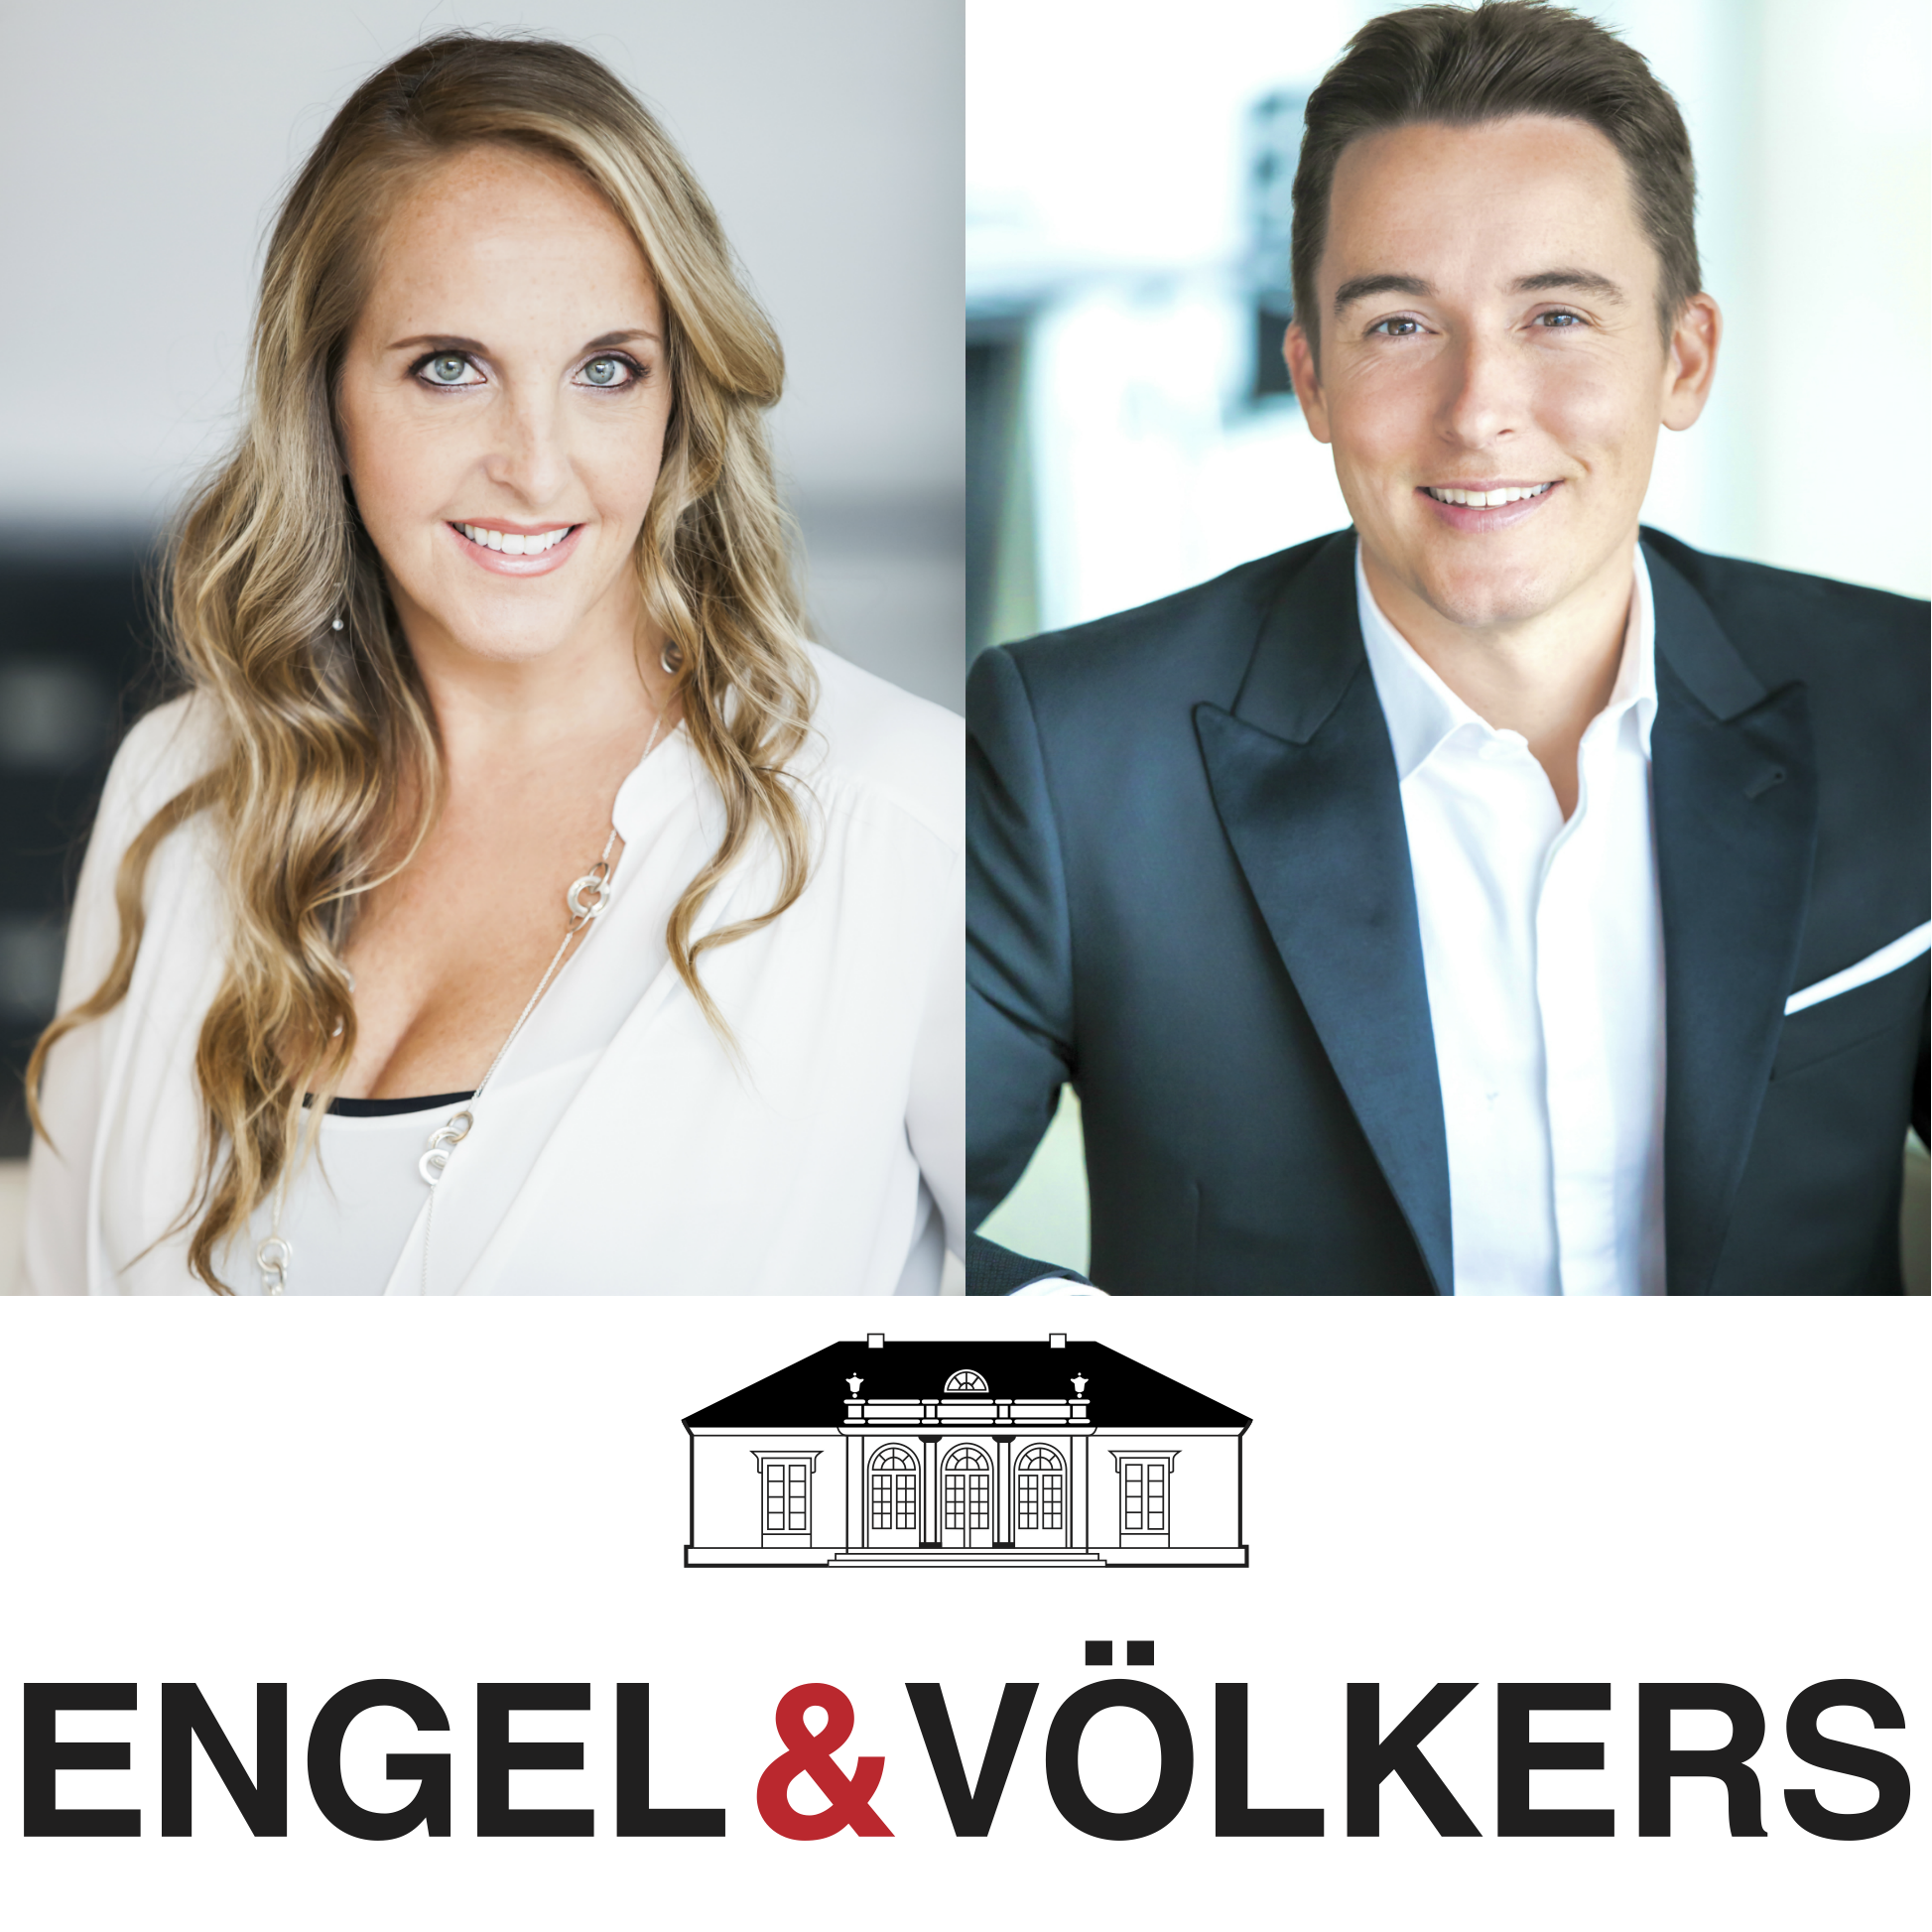 Mcgill immobilier annonce l arriv e prochaine du g ant for Engel and volkers nyc